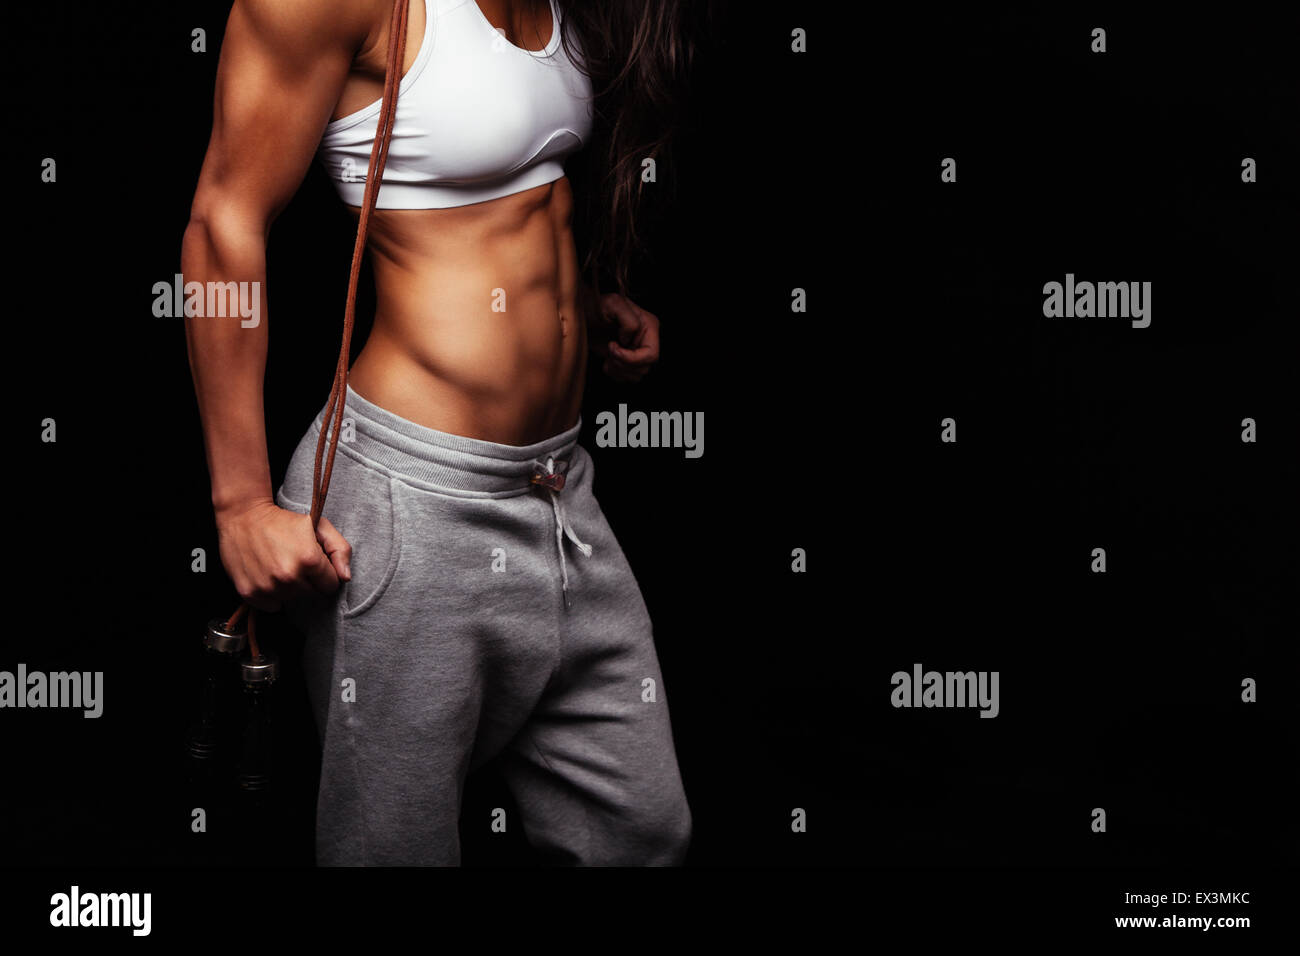 Close up of young woman's torso. Perfect abdomen muscles of a female athlete holding skipping ropes on black - Stock Image